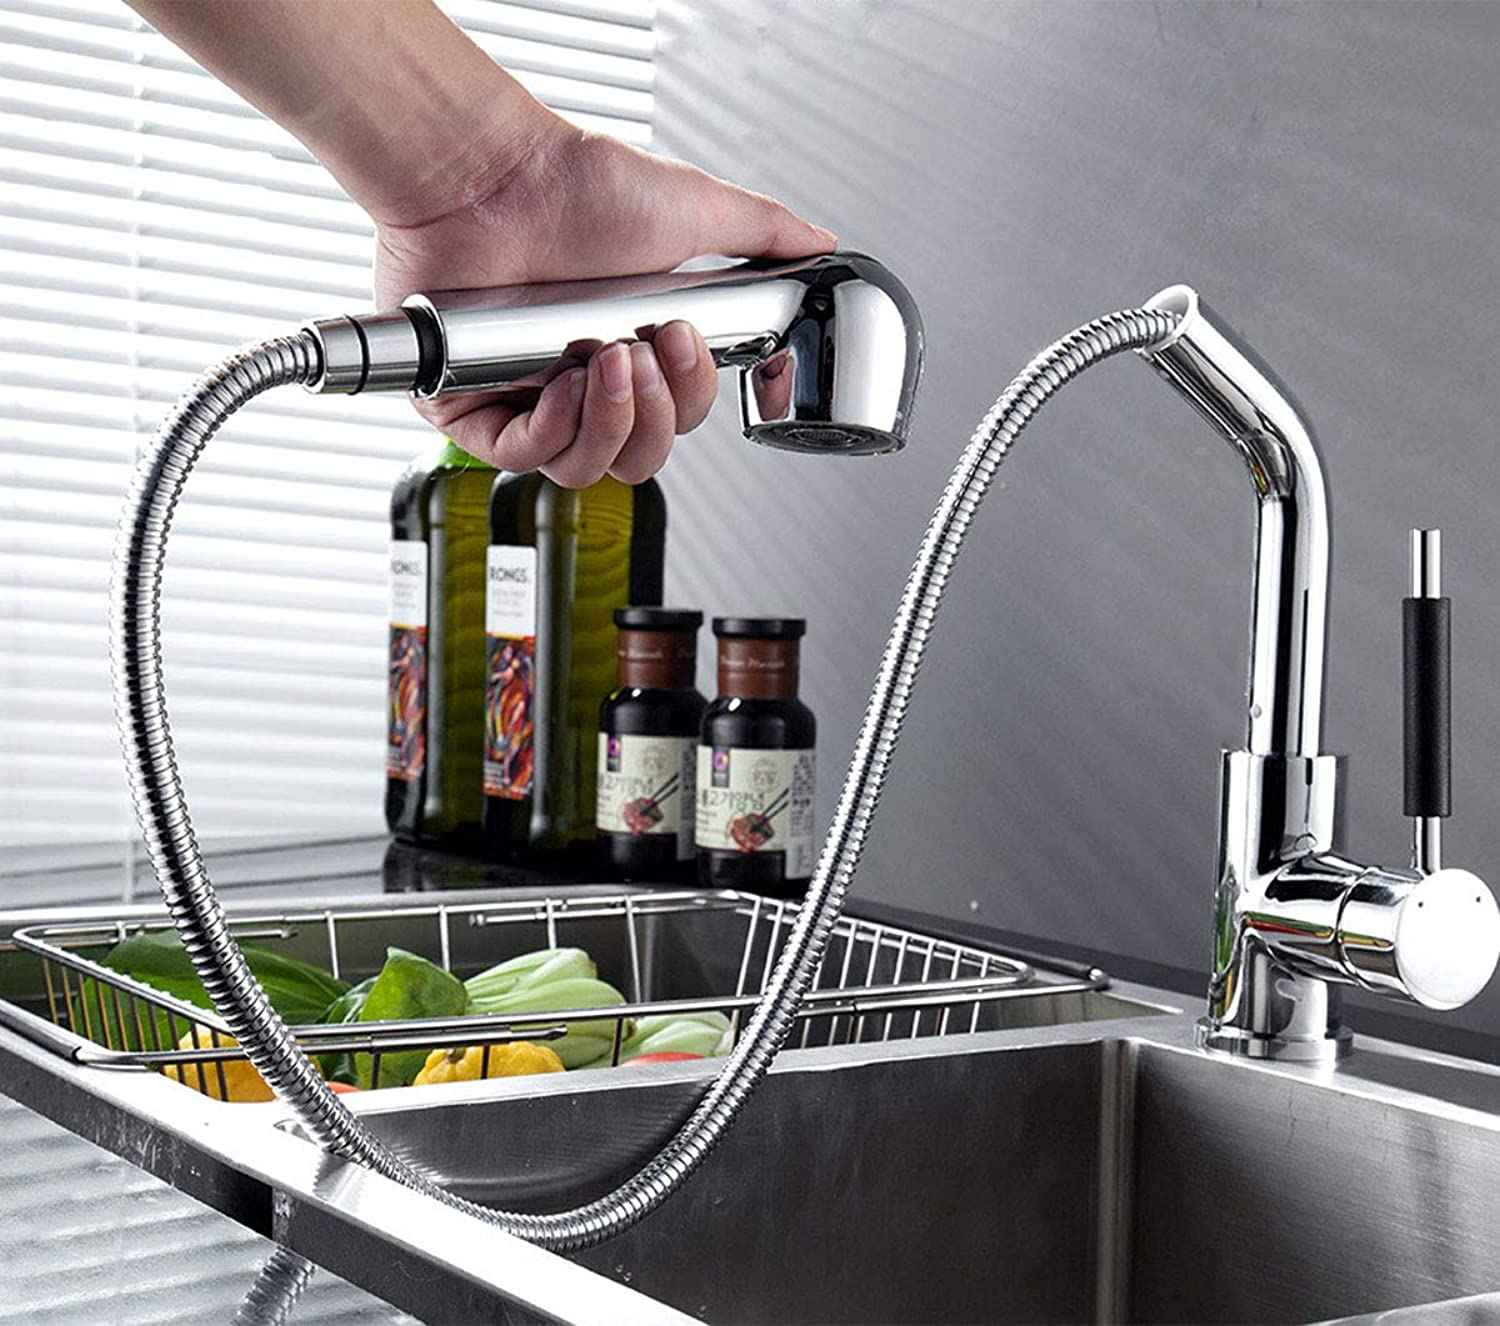 DONGCY 360°redating faucet Kitchen faucet faucet sink faucet hot and cold, copper